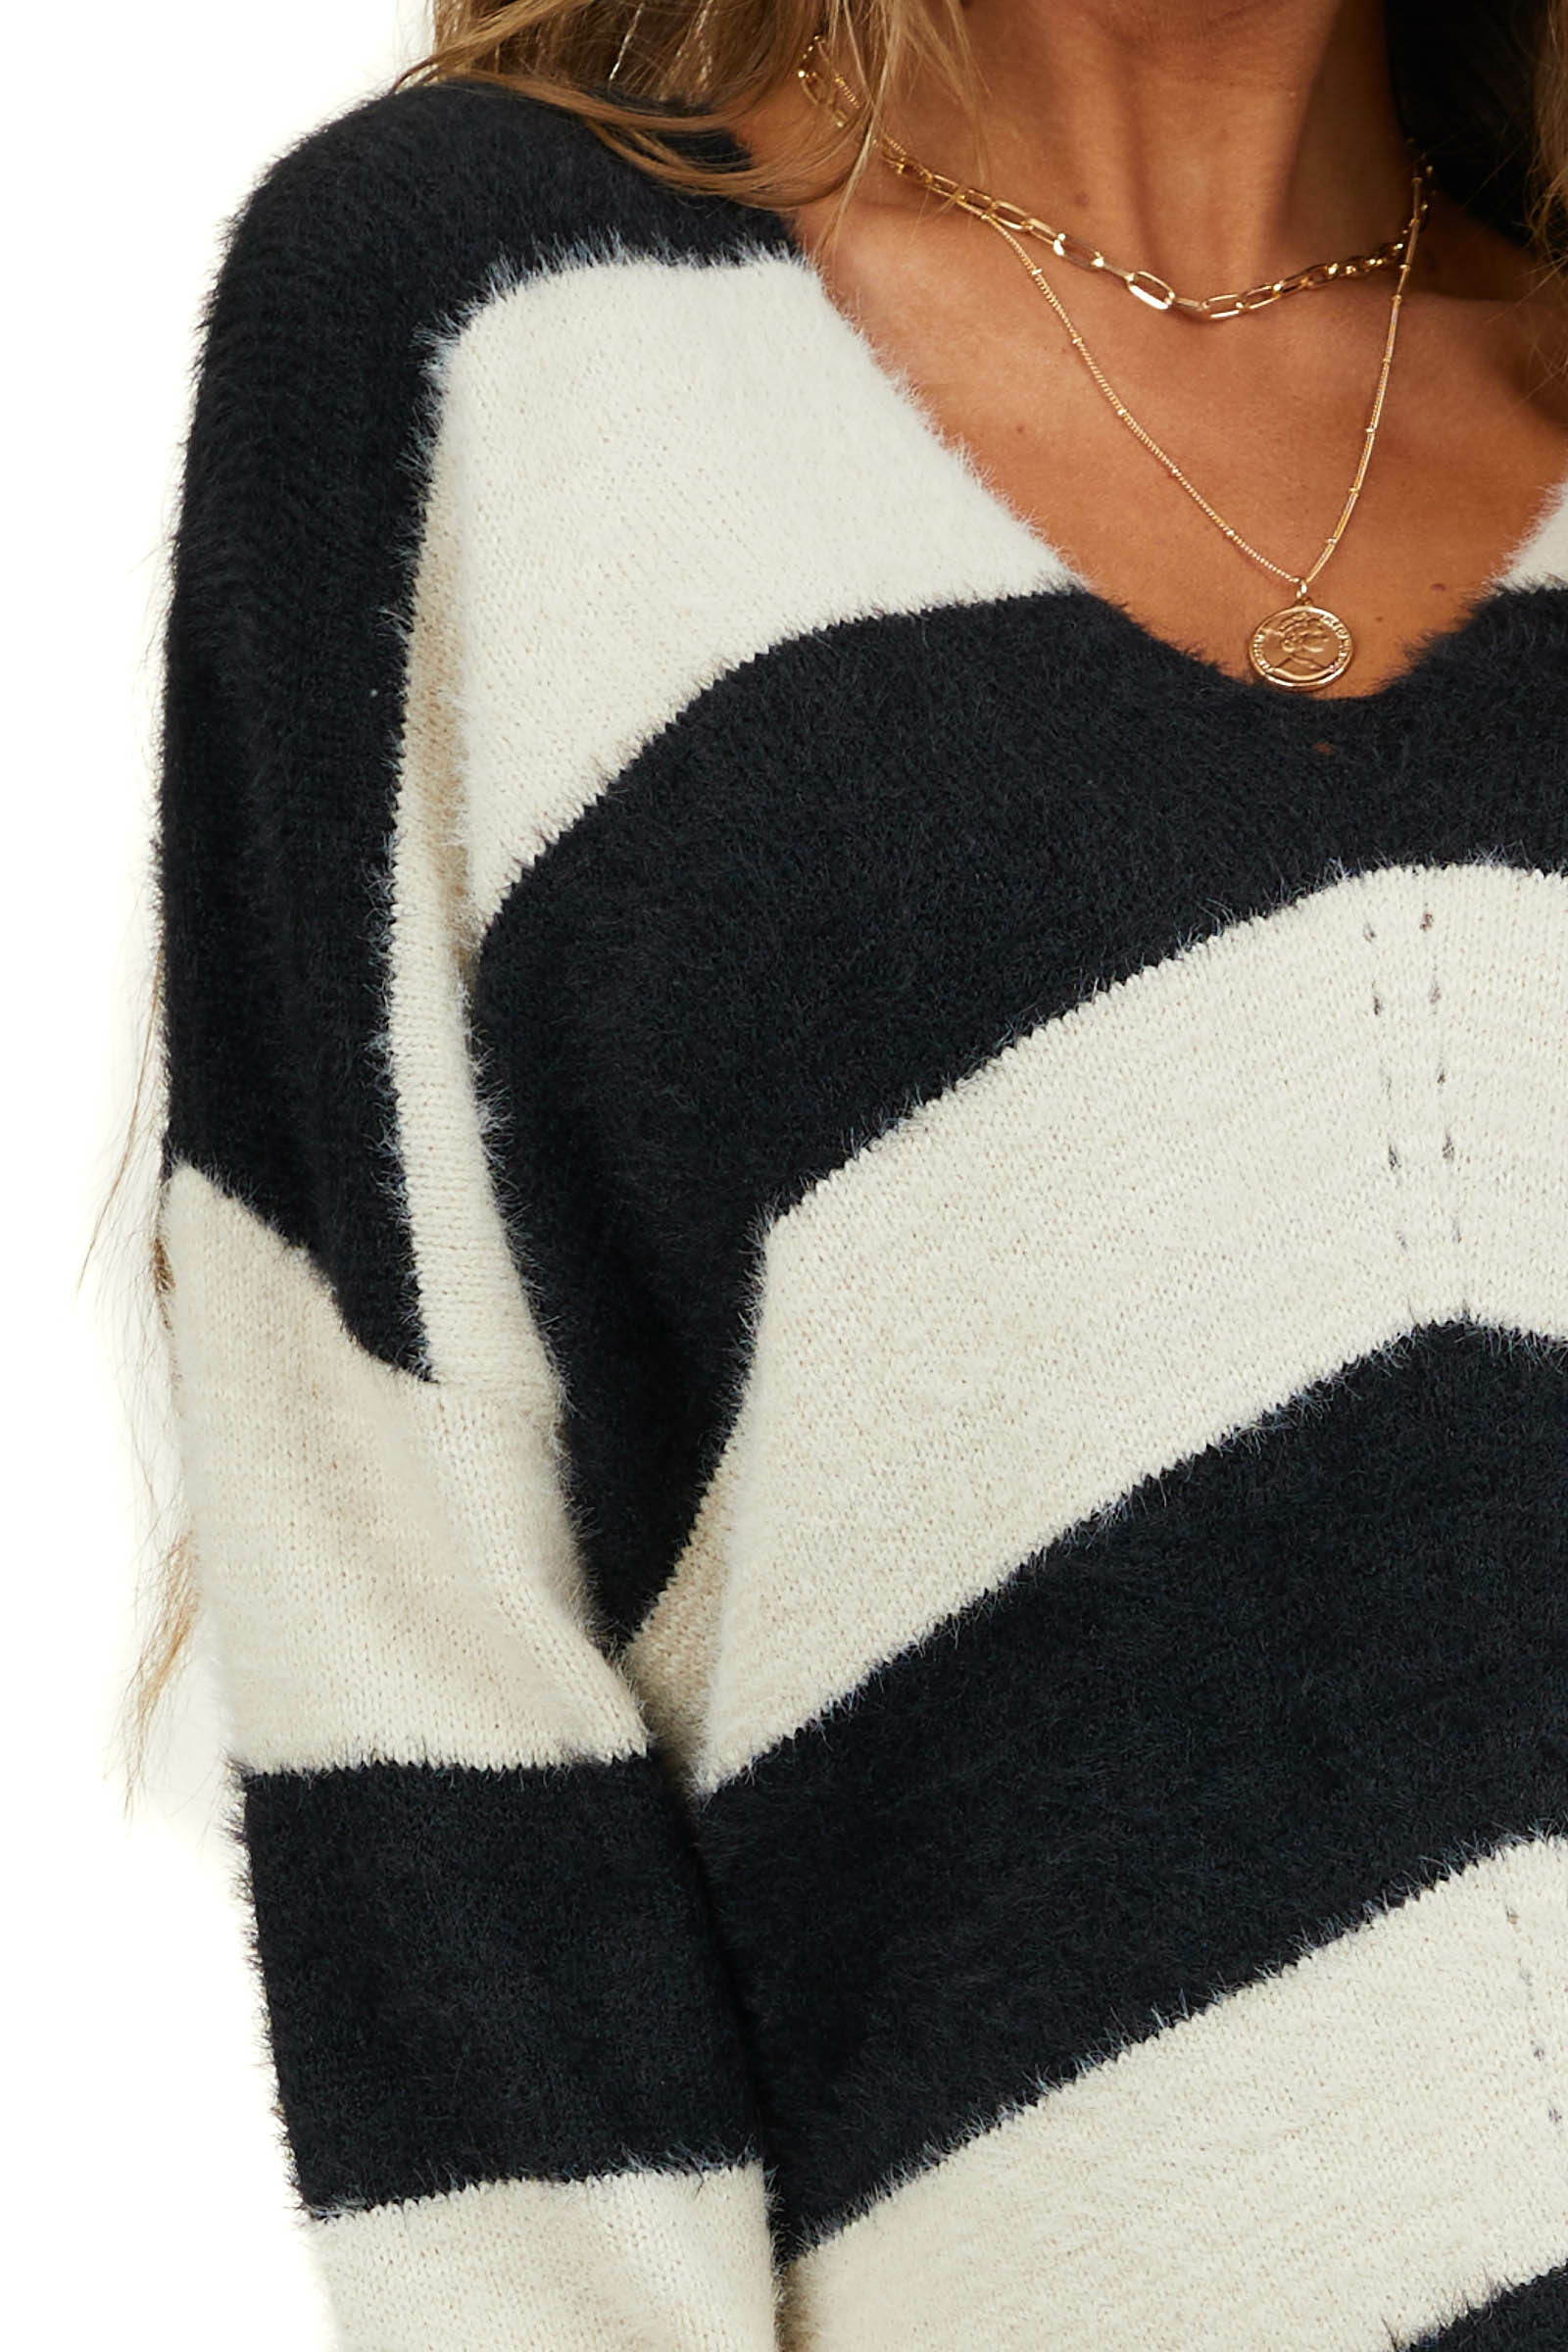 Black and Ivory Stripe Print Knit Sweater with V Neckline